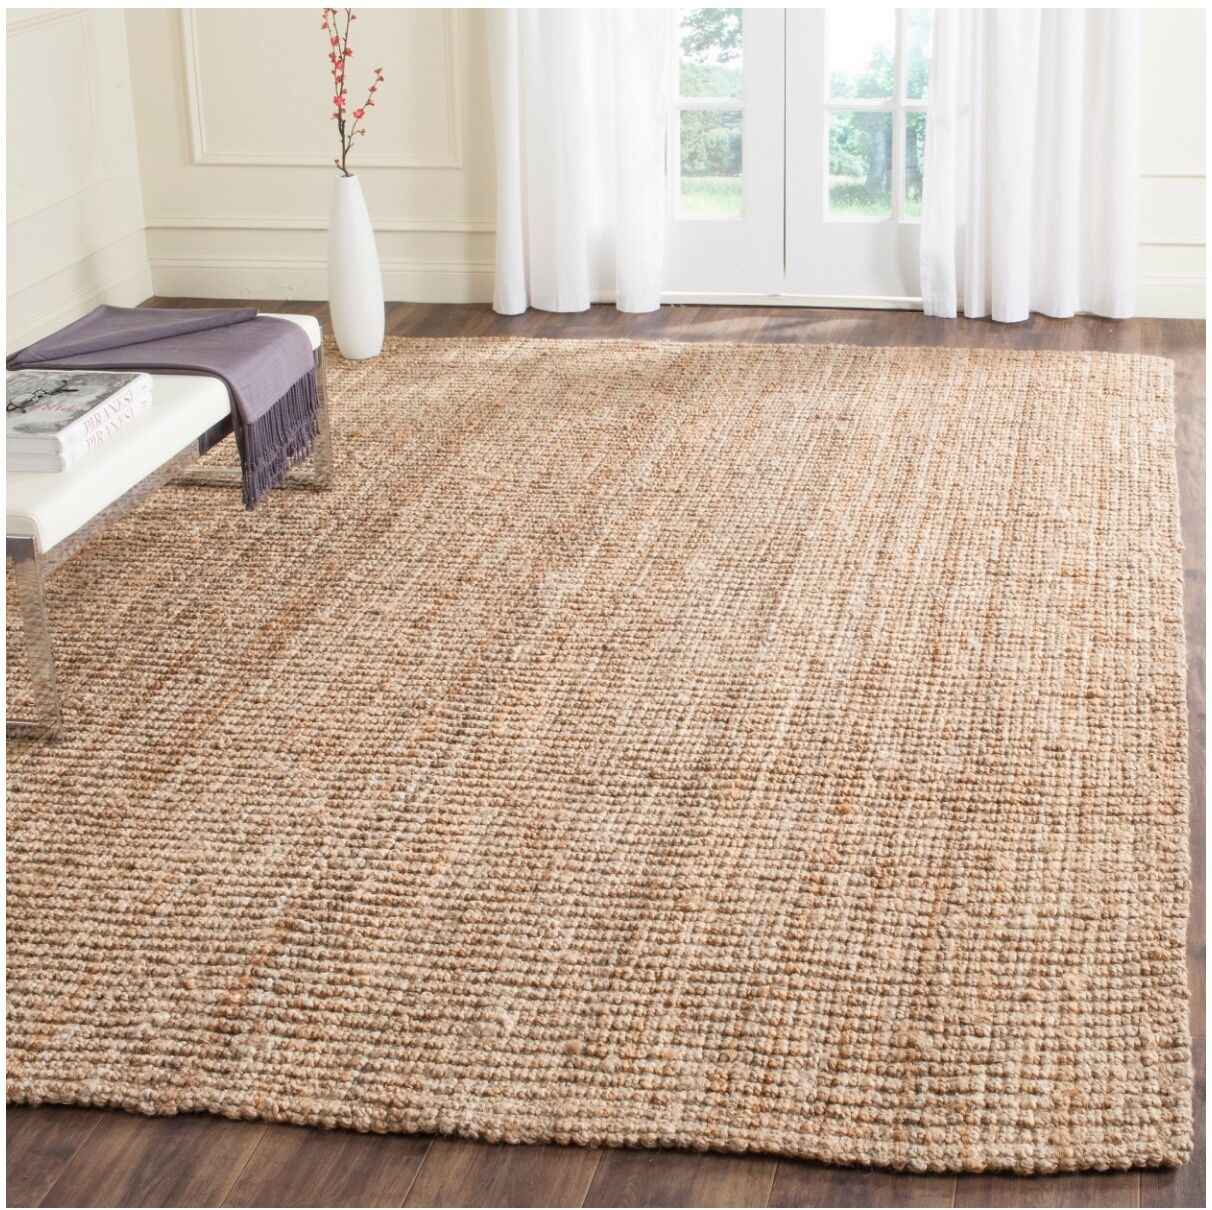 Crate And Barrel Kitchen Rugs Area Rugs 8x10 Clearance Area Rug 8x10 Clearance Safavieh